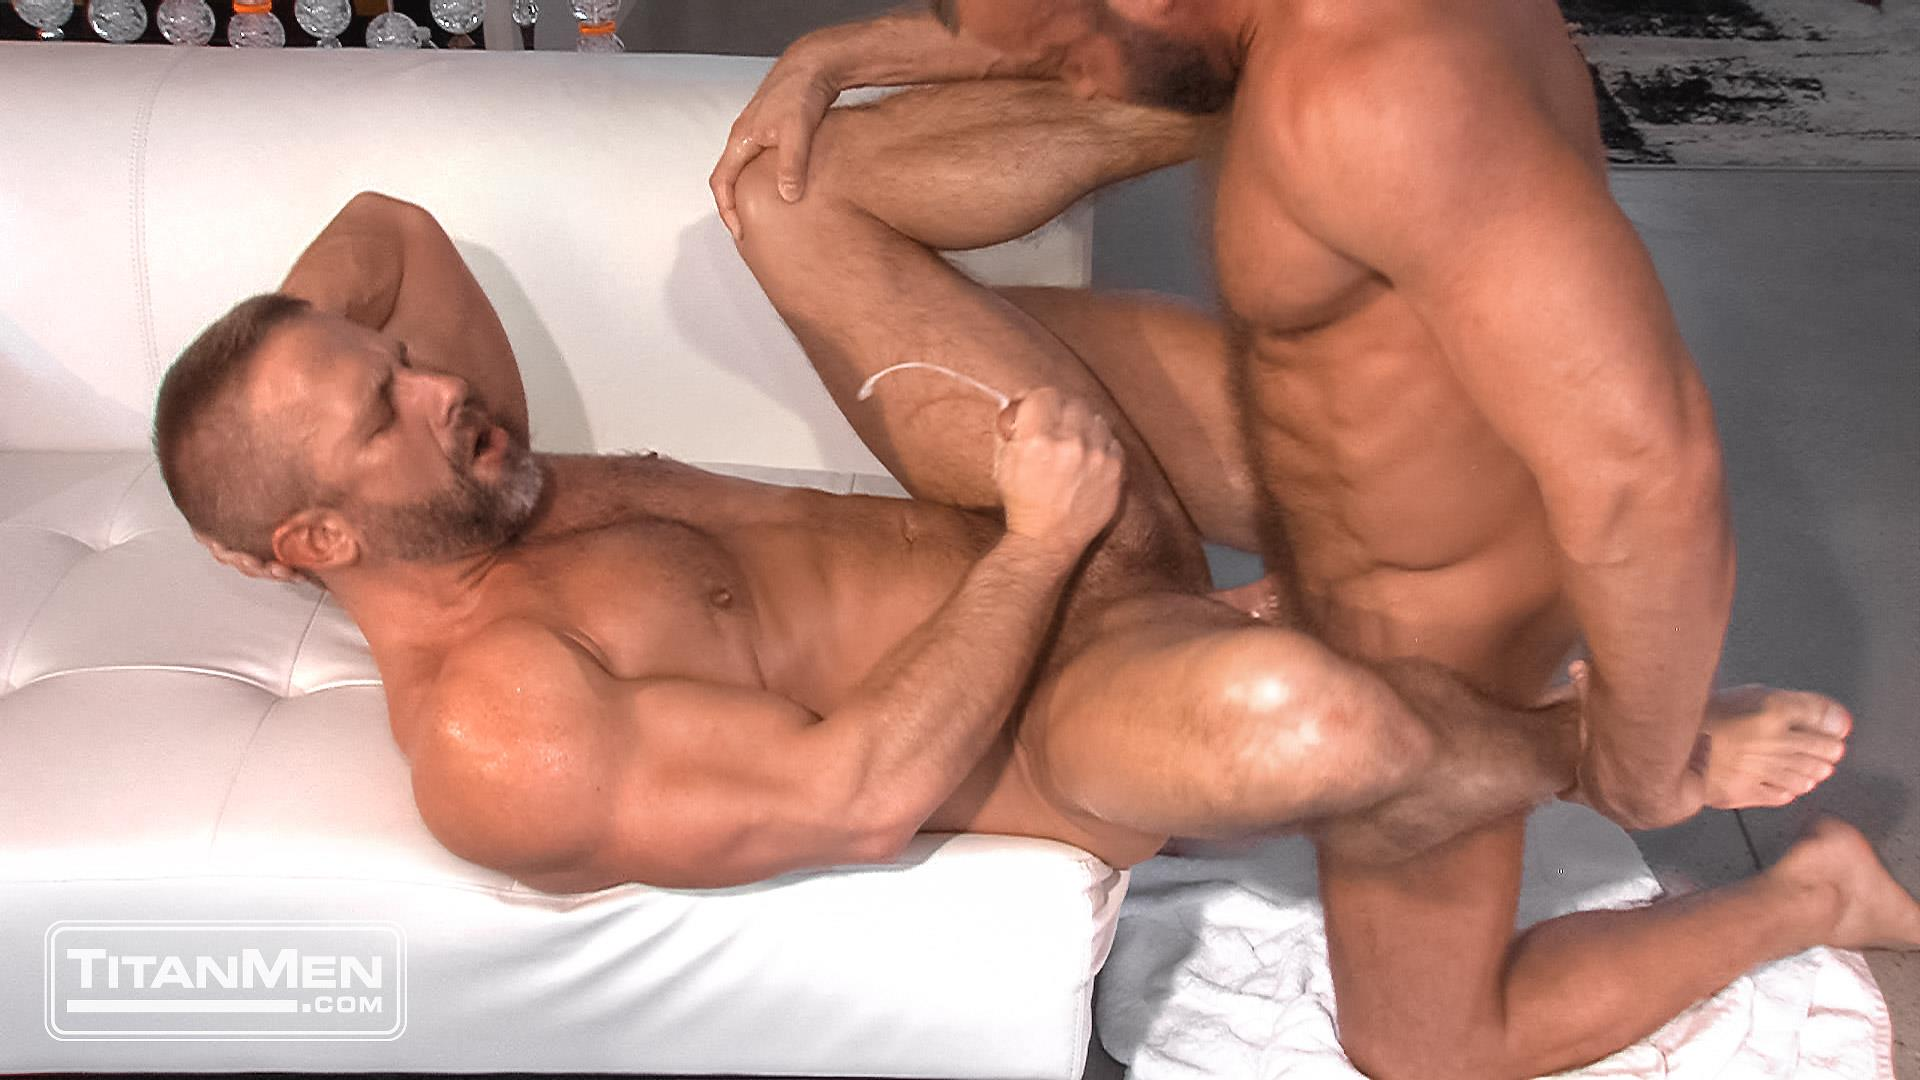 Titanmen-Titan-Hunter-Marx-and-Dirk-Caber-Hairy-Muscle-Daddy-Fuck-Amateur-Gay-Porn-44 Dirk Carber Gets Fucked Hard By Another Muscle Daddy With A Thick Cock